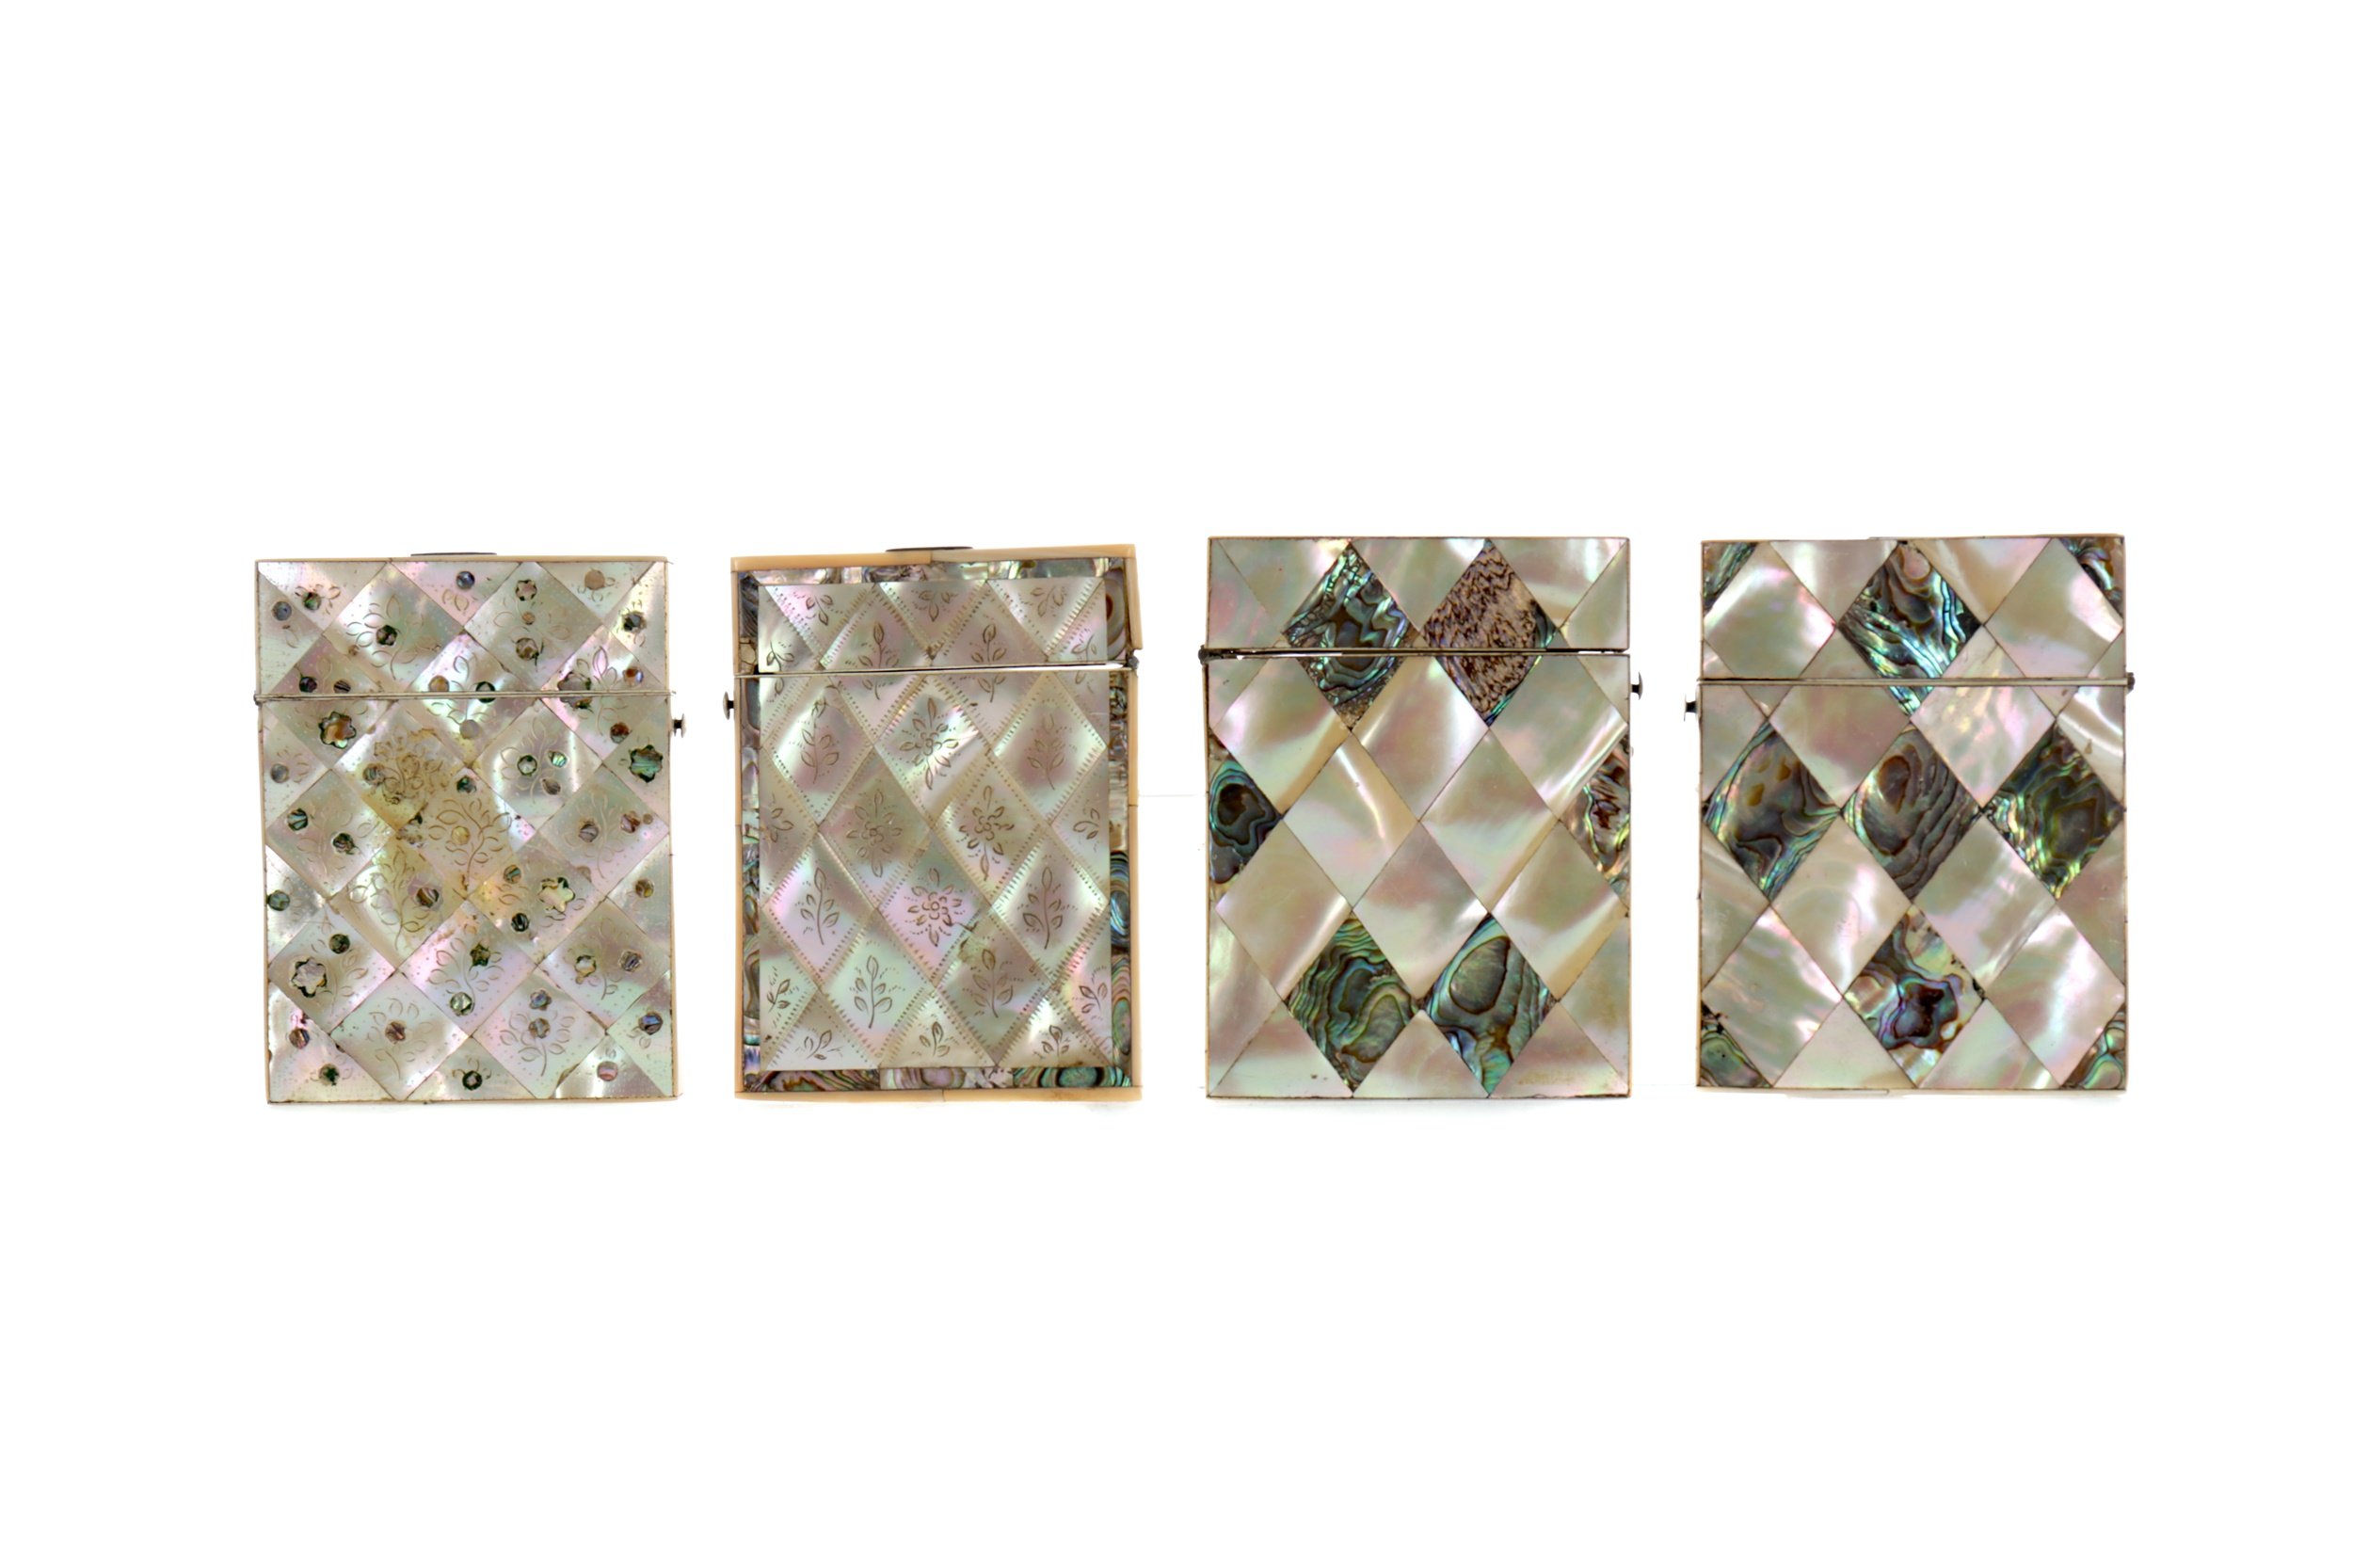 FOUR LATE 19TH CENTURY MOTHER OF PEARL CARD CASES